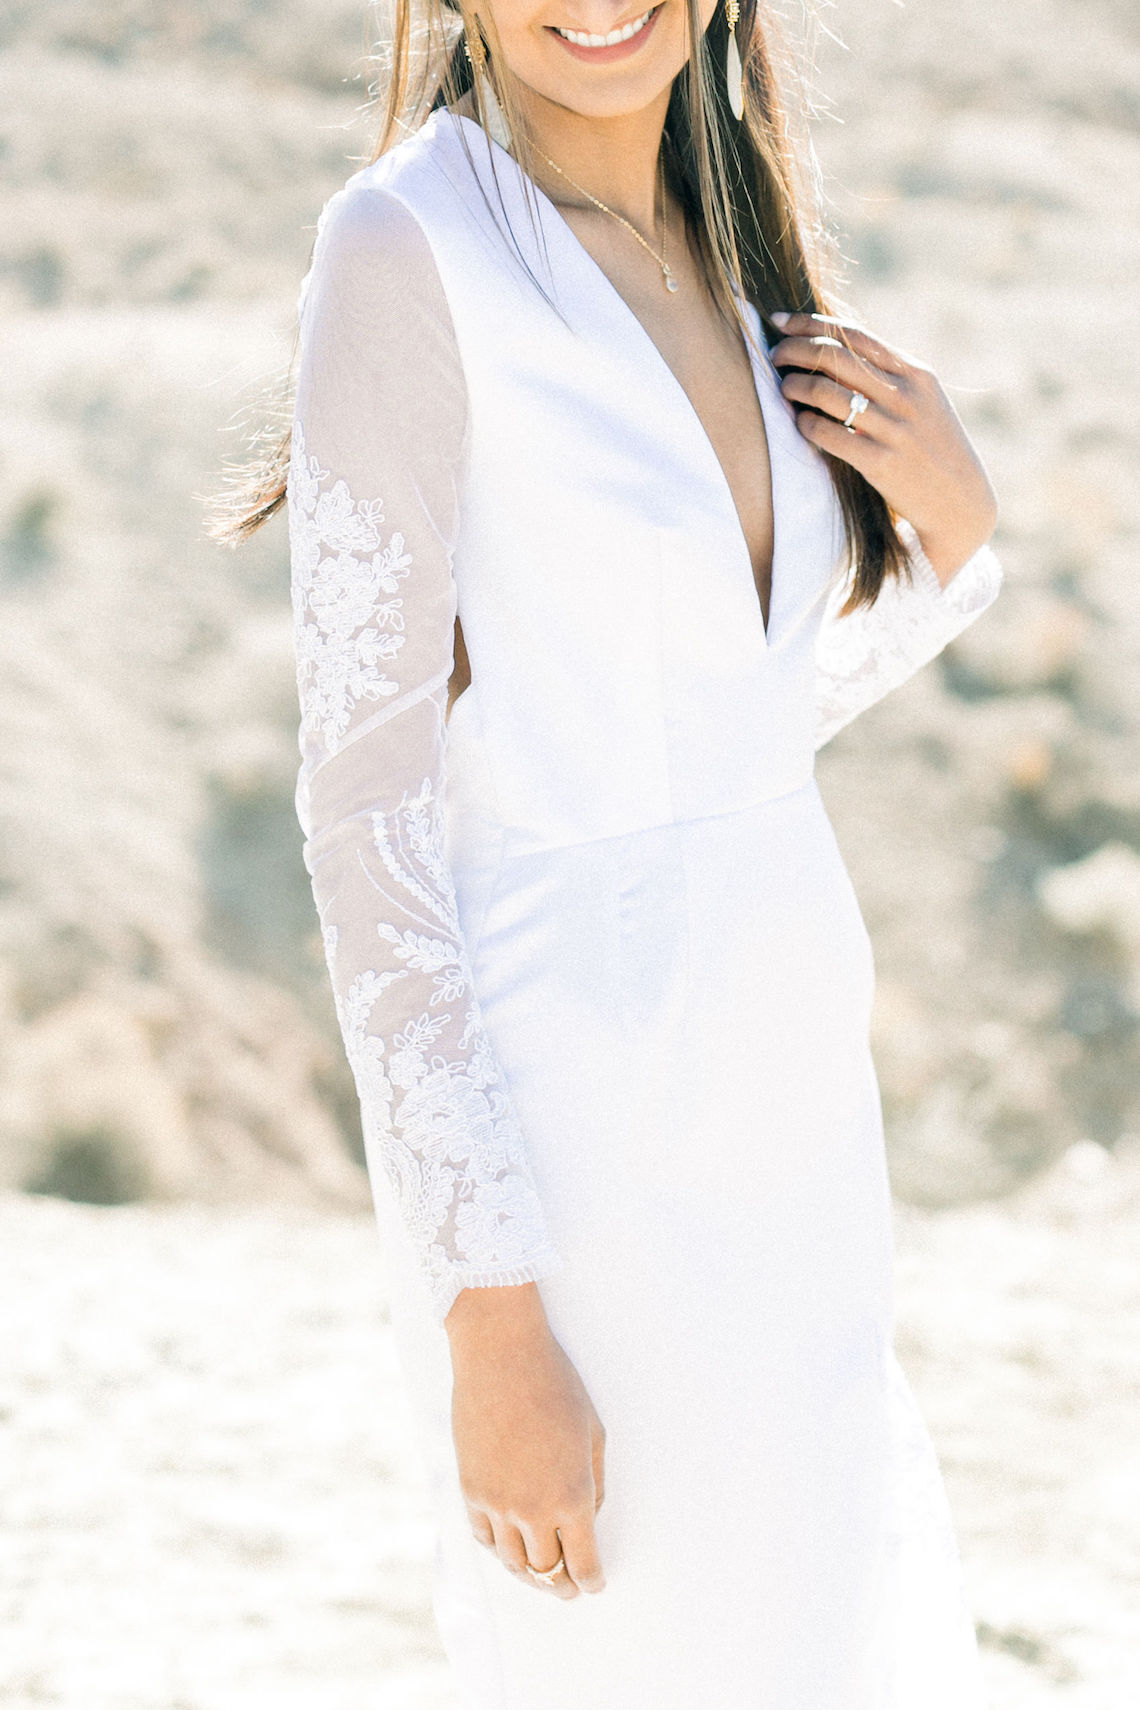 Rainbow Basin Desert Wedding Inspiration with Moon Stationery – Victoria Masai Photography 12